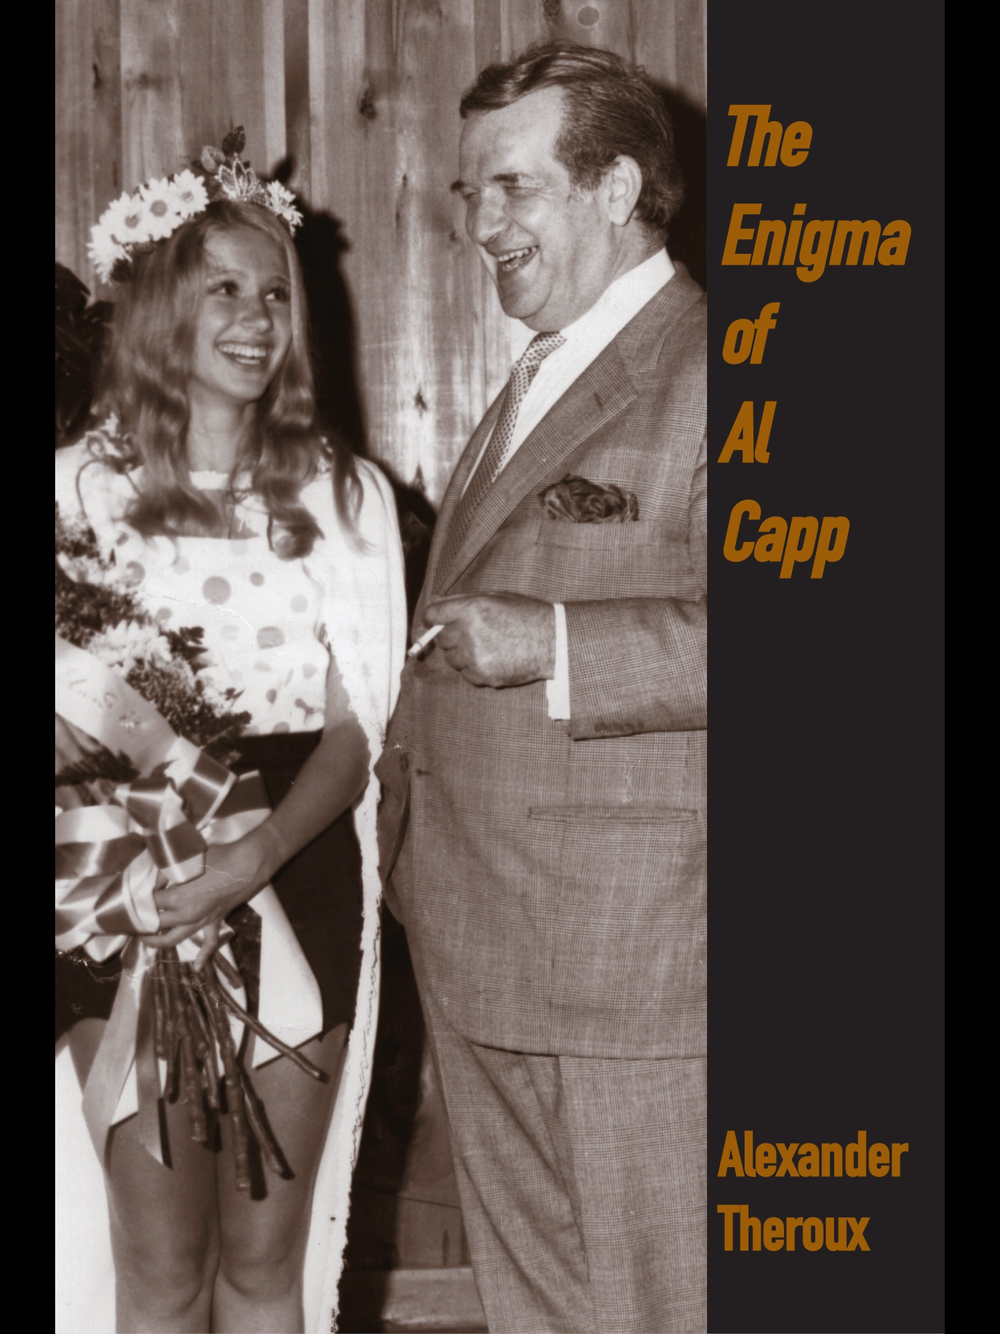 Above: The Enigma of Al Capp(image from Fantagraphics)